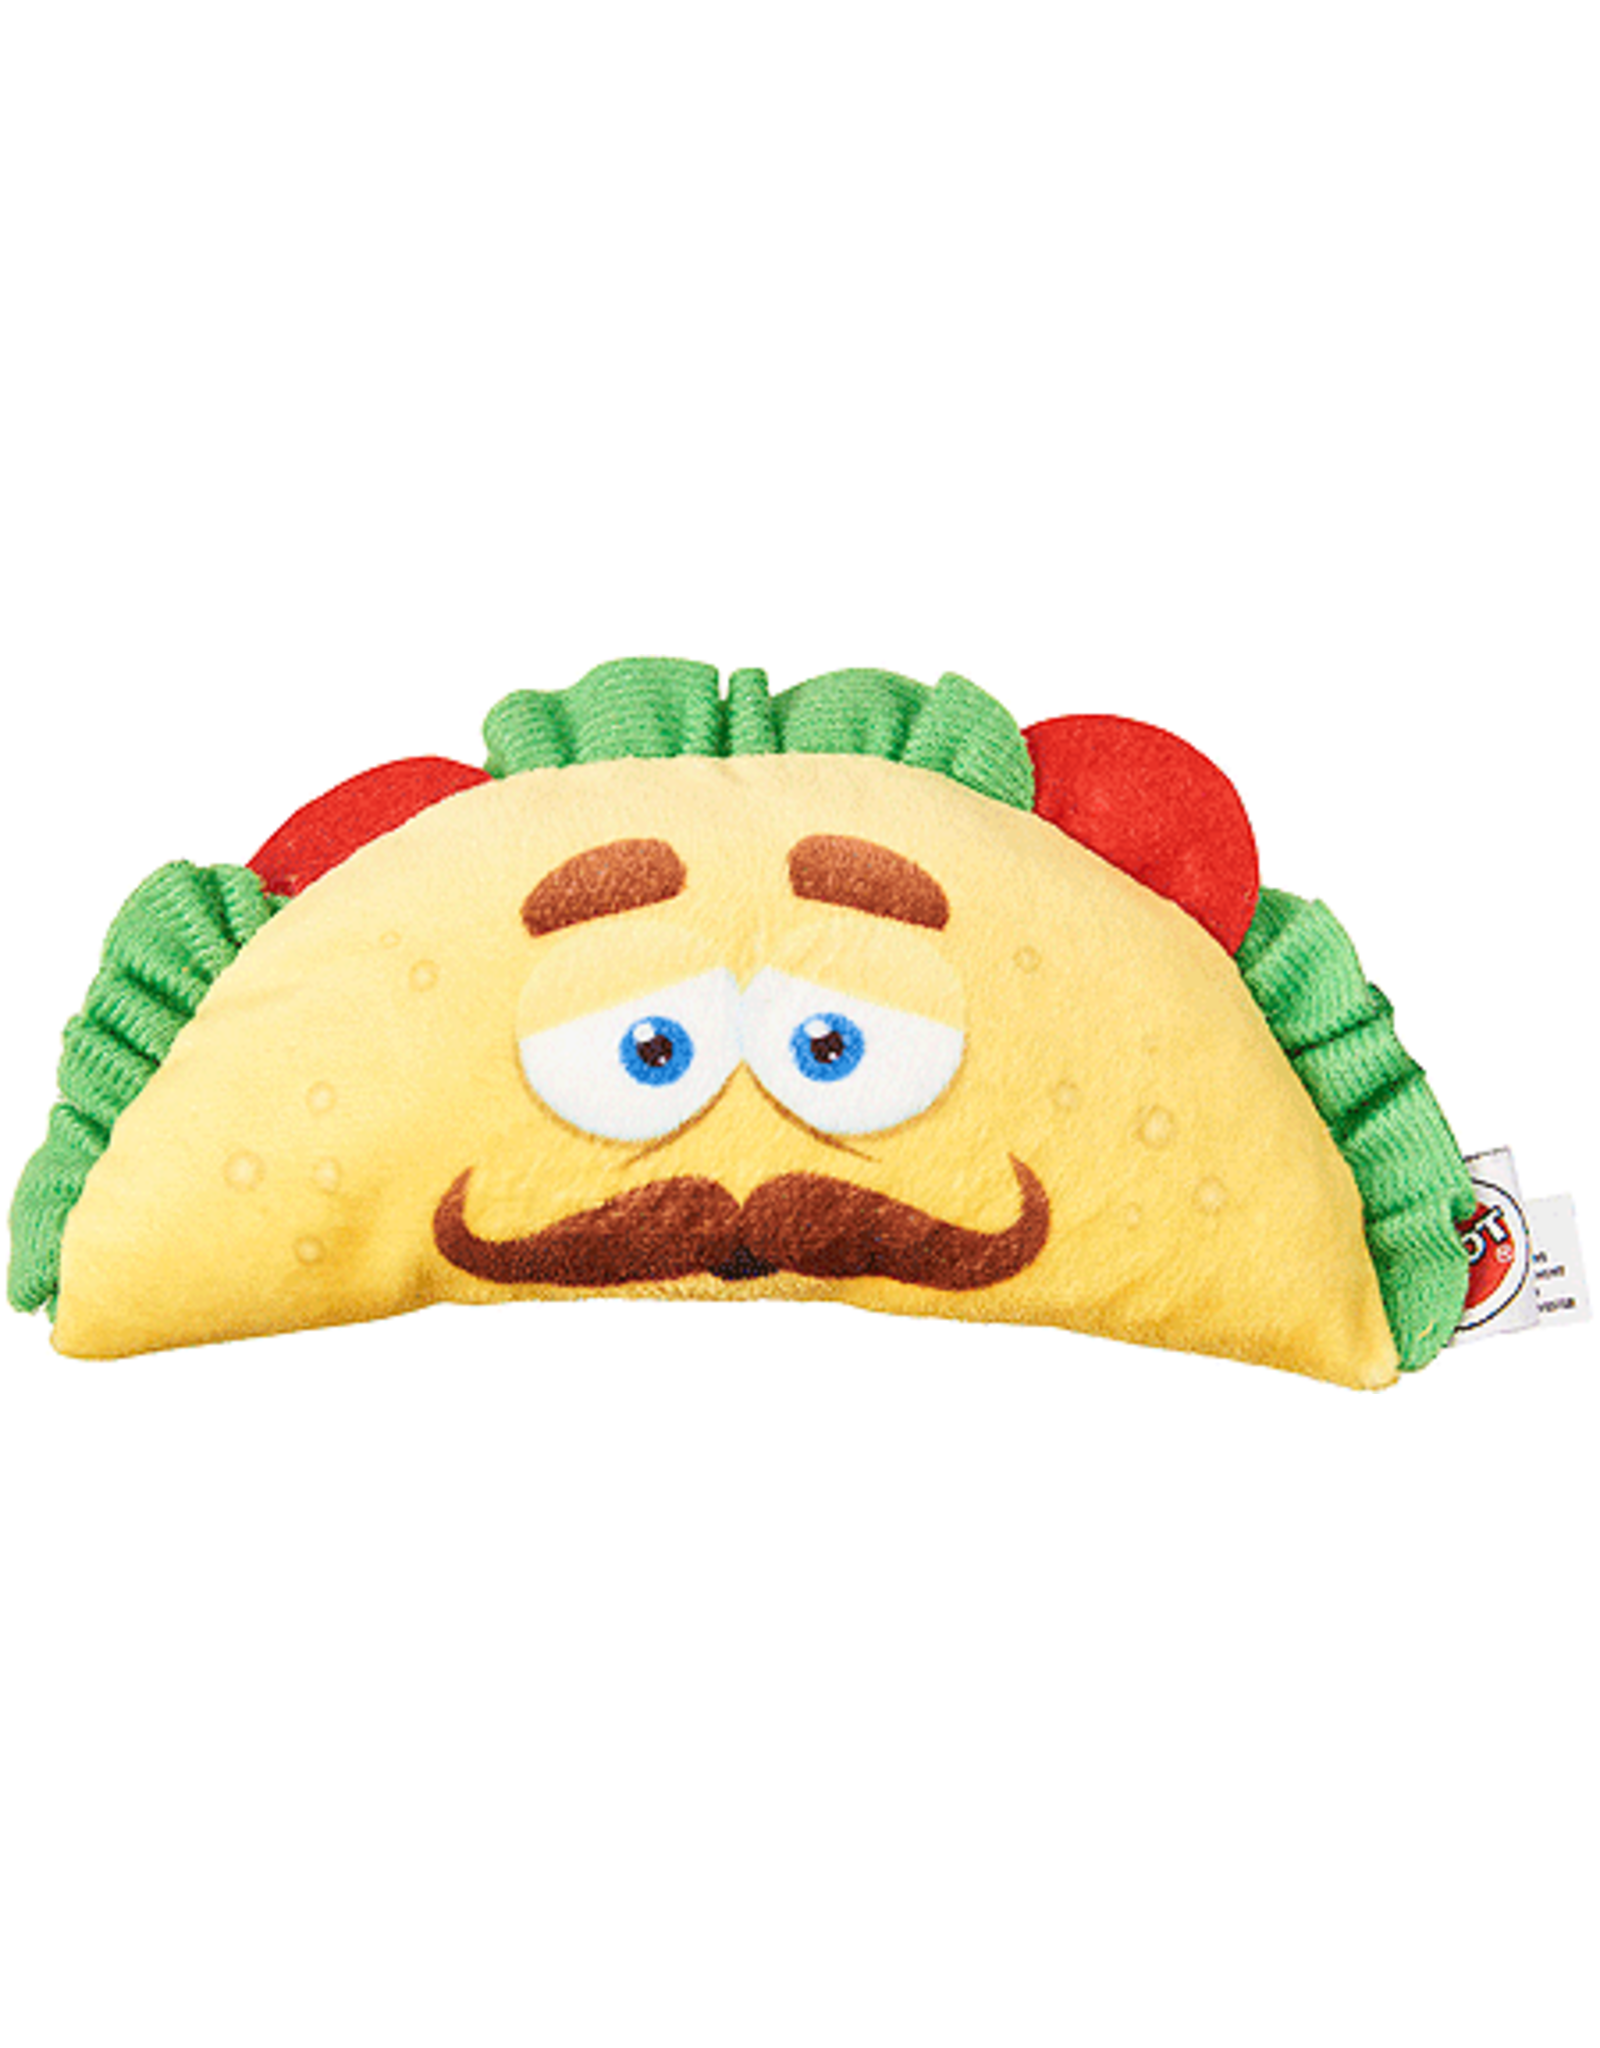 Ethical Pet Products FUN FOOD Taco 6in